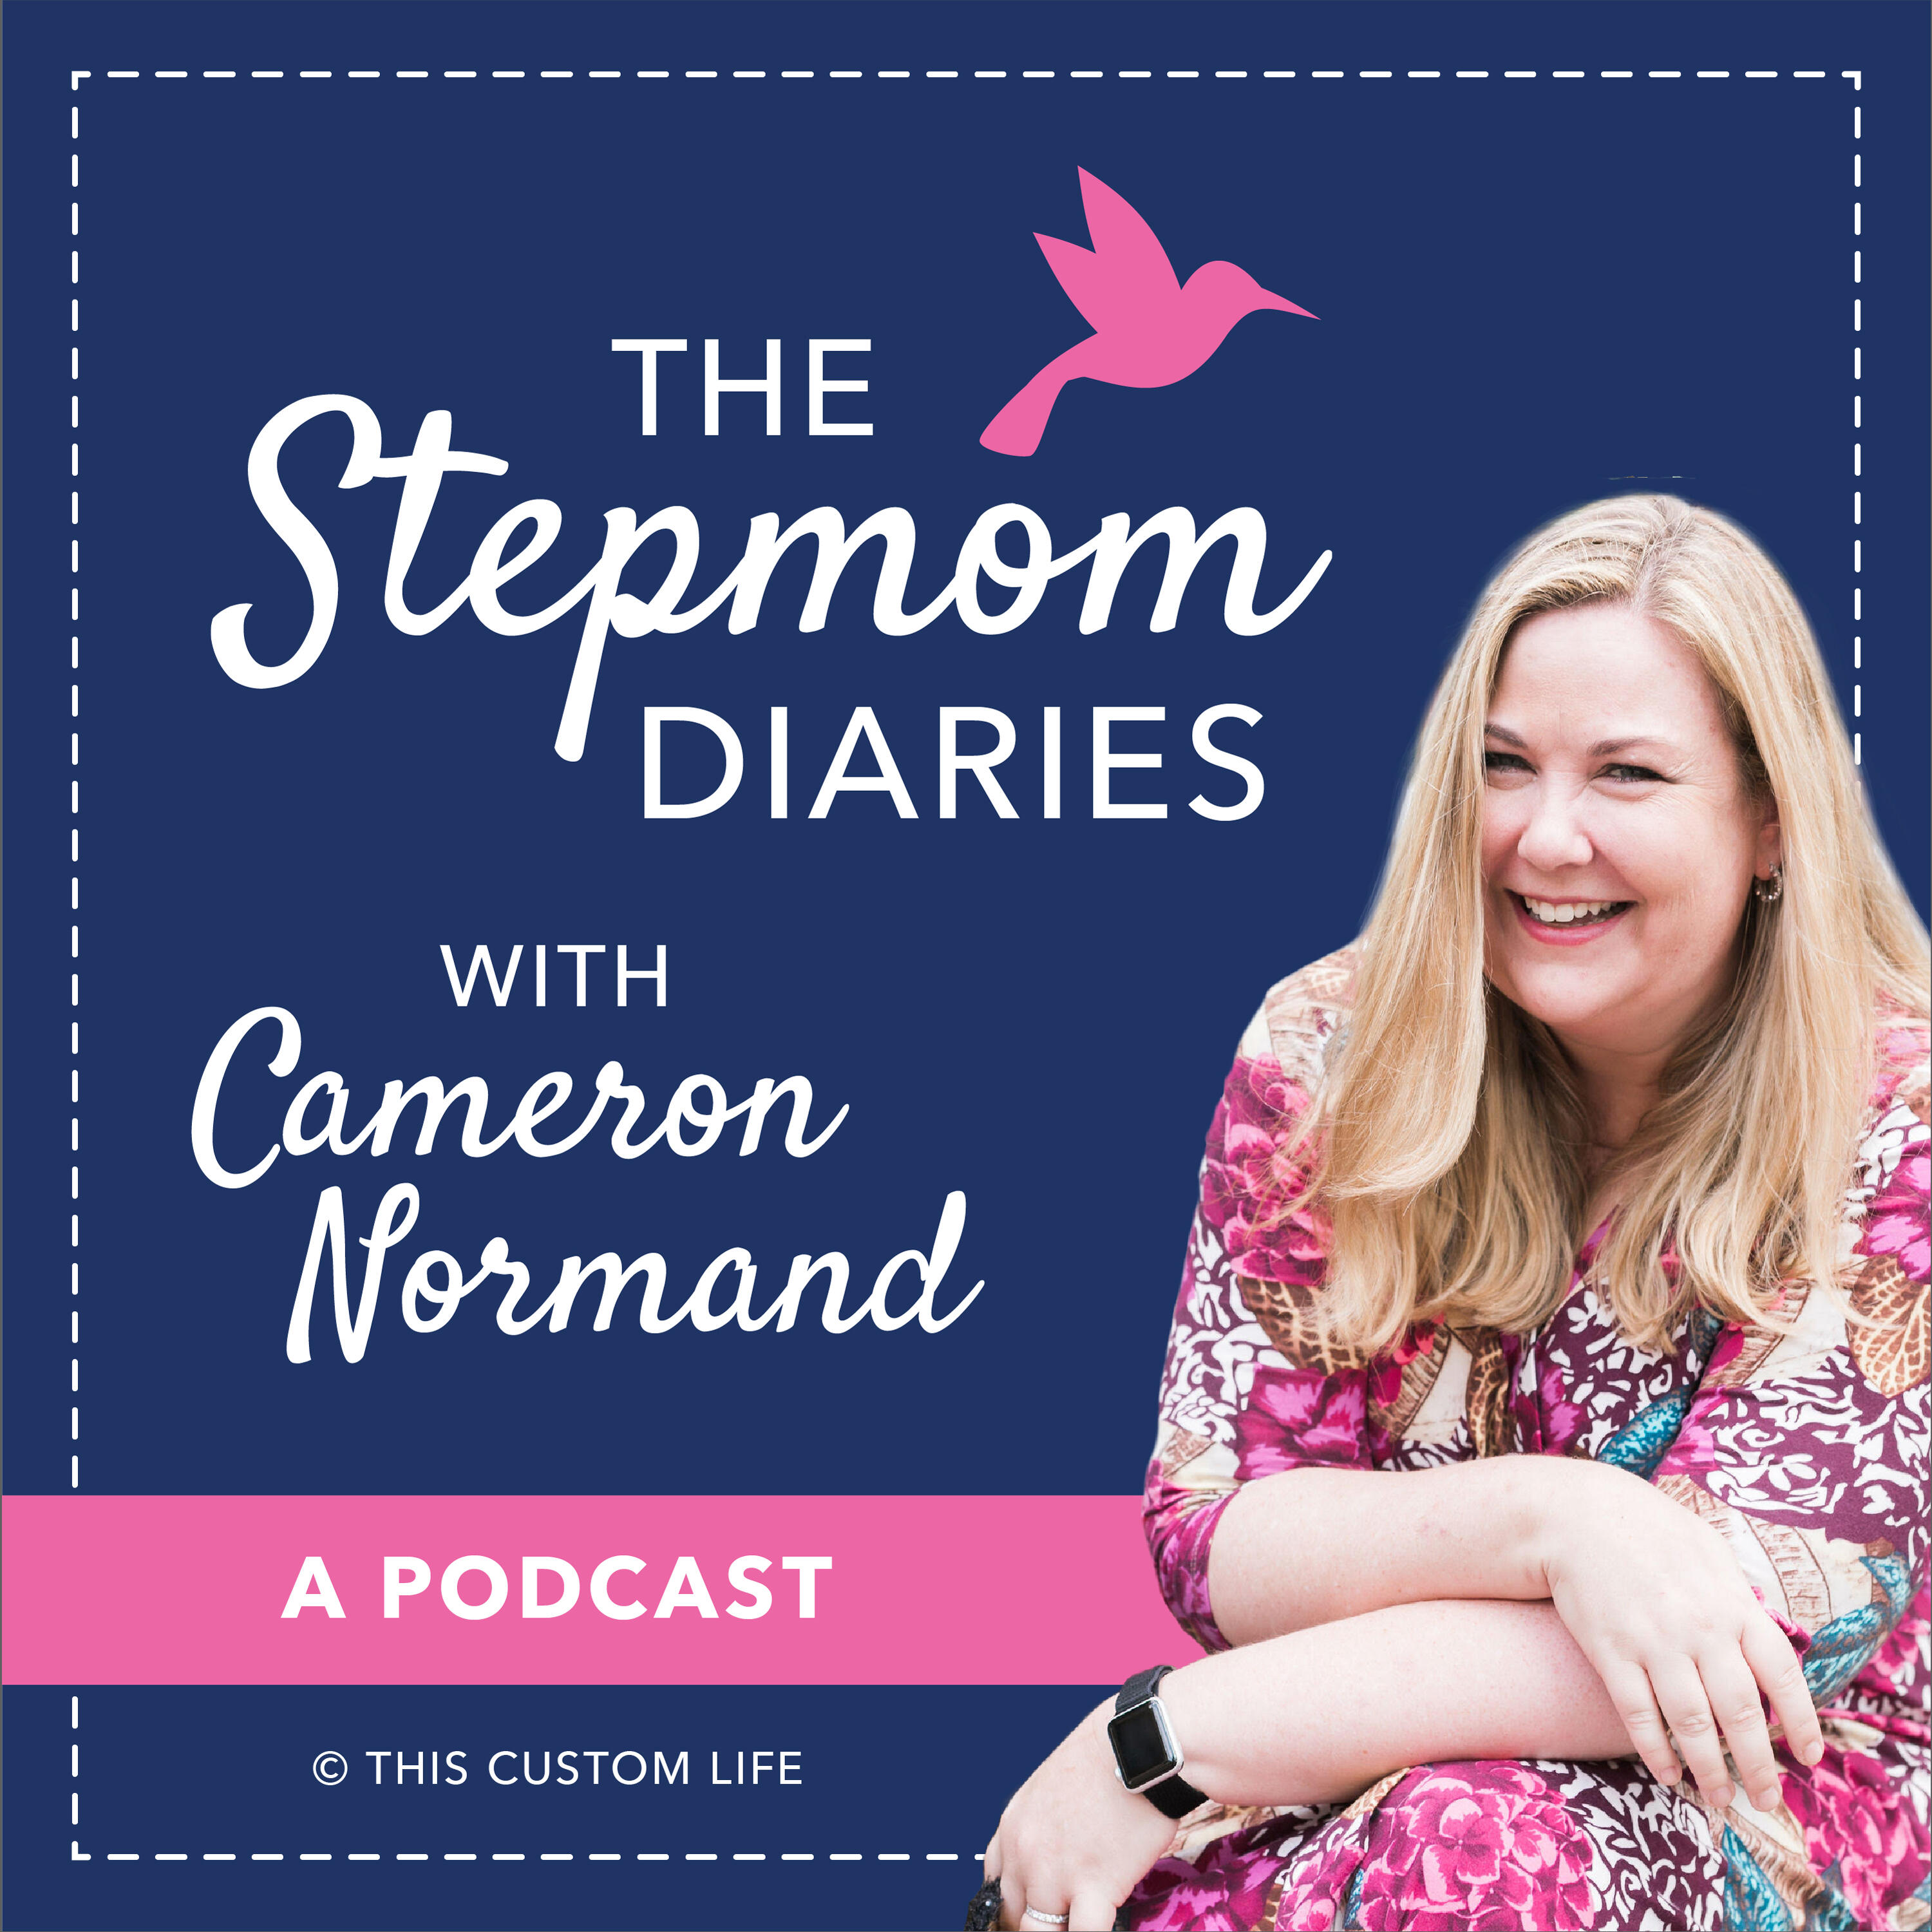 The Stepmom Diaries Podcast